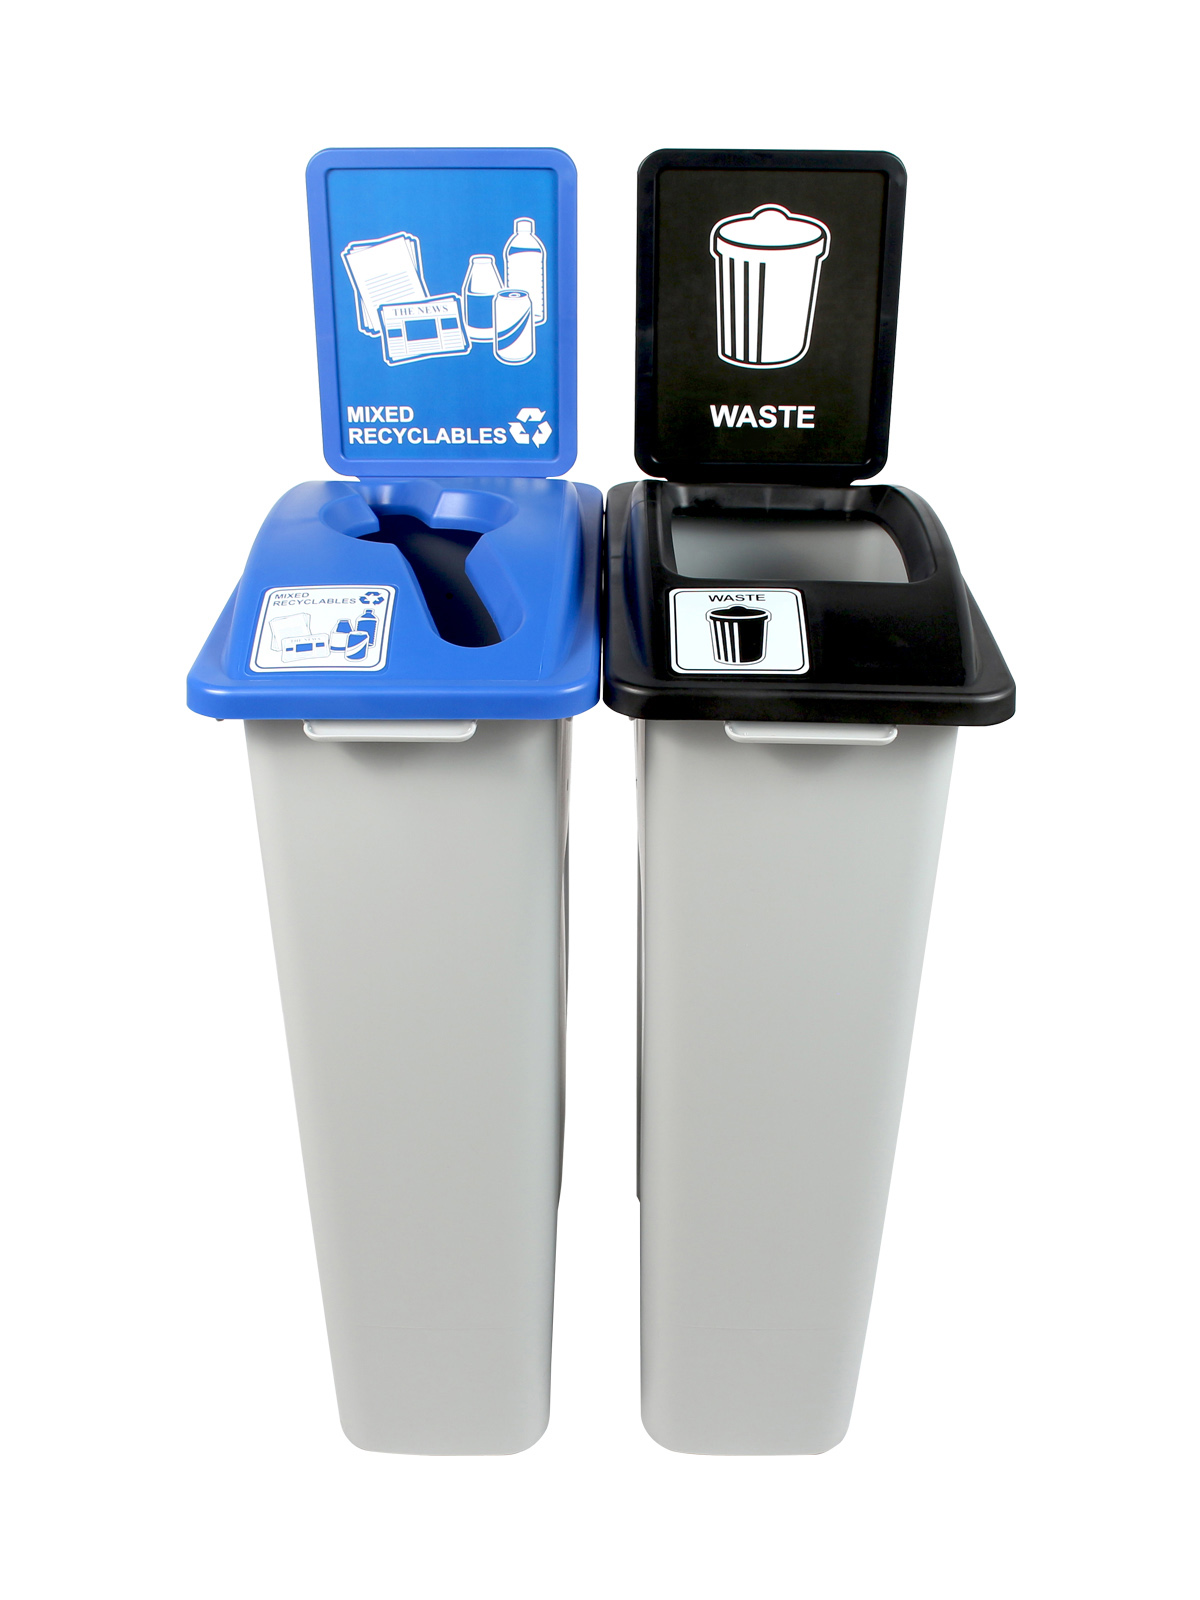 WASTE WATCHER - Double - Maine Compliant - Mixed Recyclables-Waste - Mixed-Full - Grey-Blue-Black title=